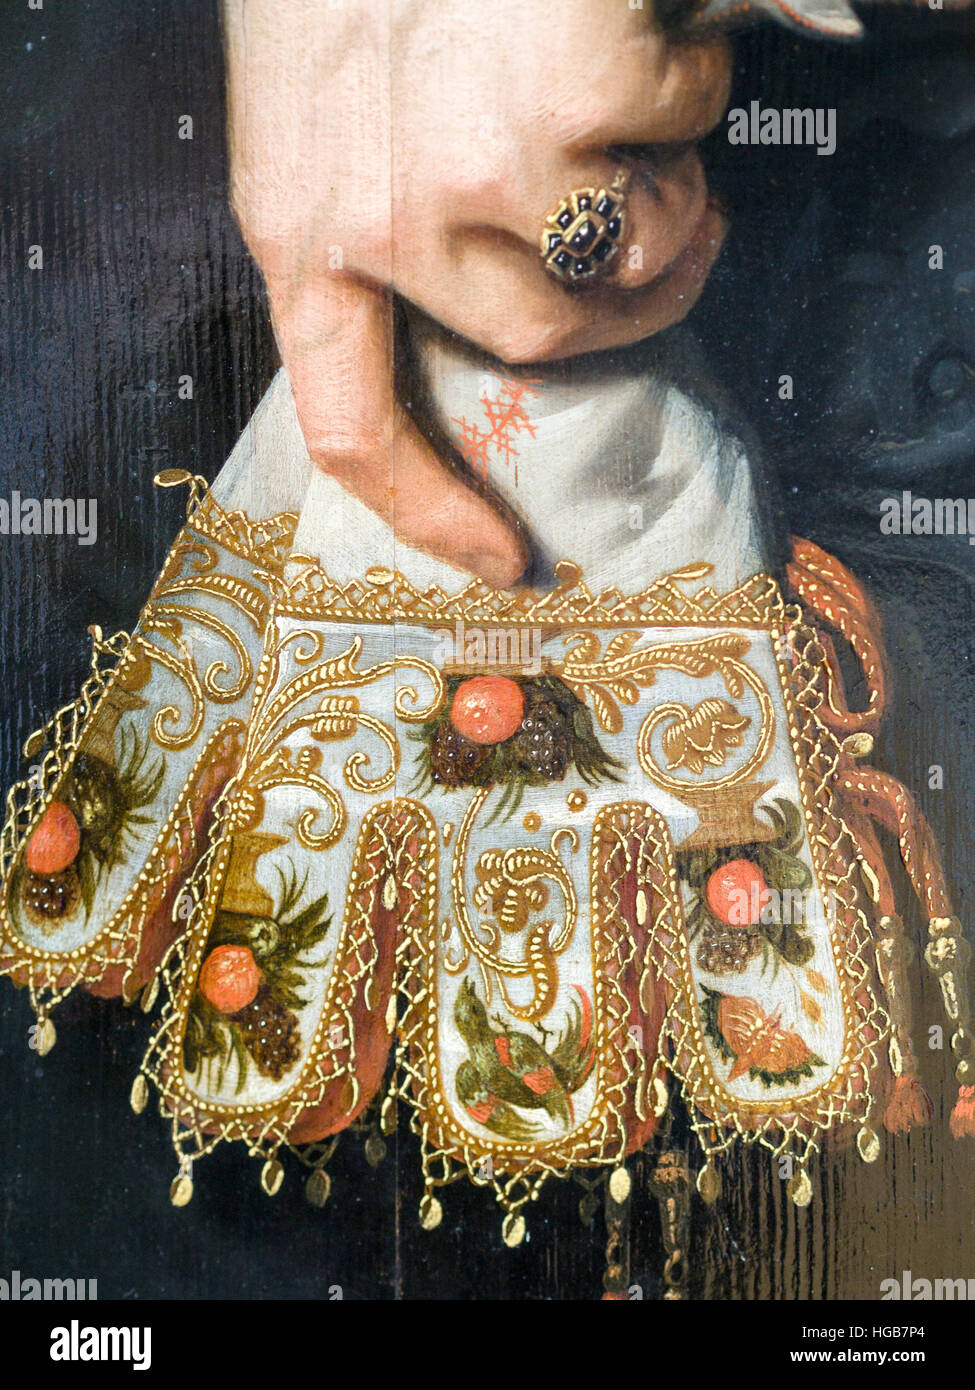 Detail of a fan in a woman's hand. Detail from a Portrait of a woman 34 years old by Nicolaea Elias dit Pickenoy - Stock Image